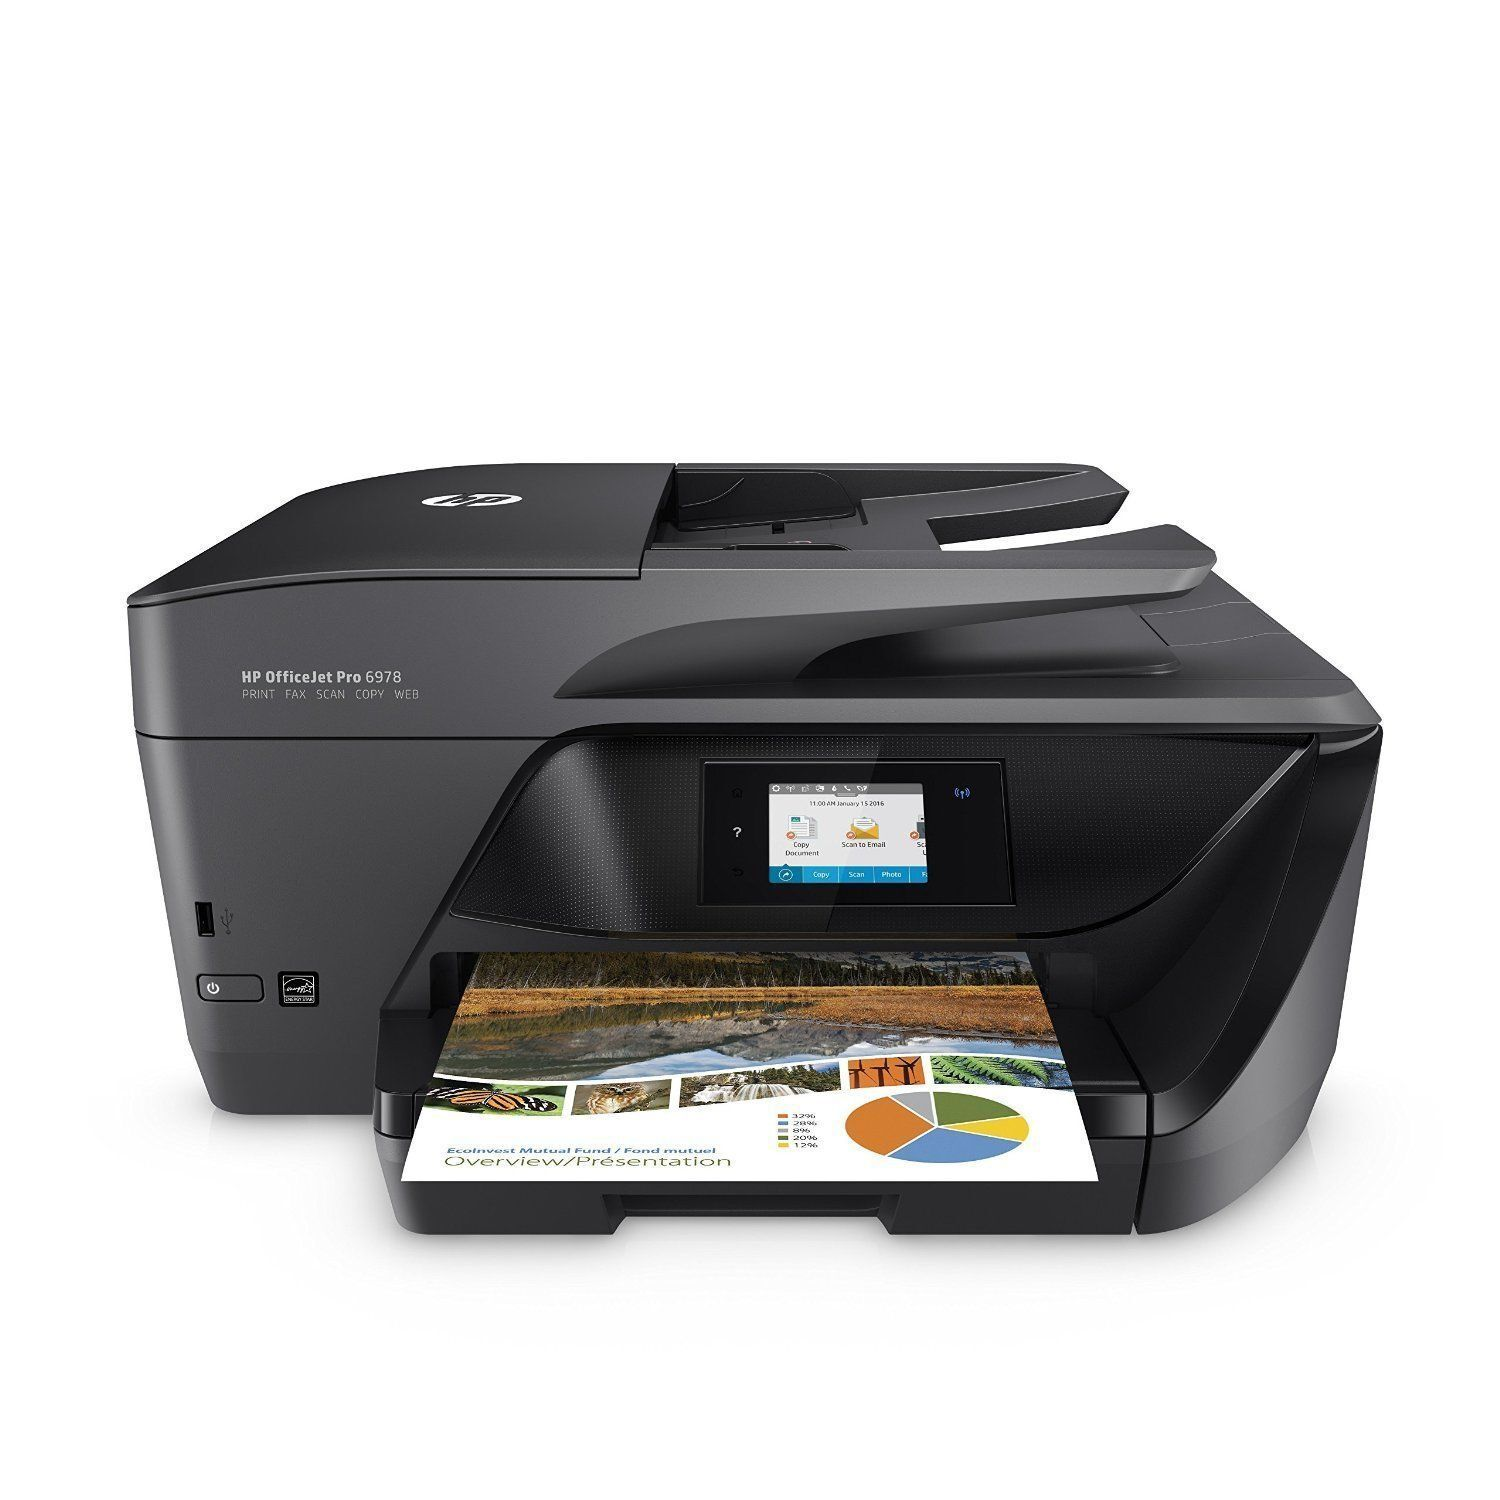 DELL A910 PRINTER WINDOWS 8 X64 DRIVER DOWNLOAD